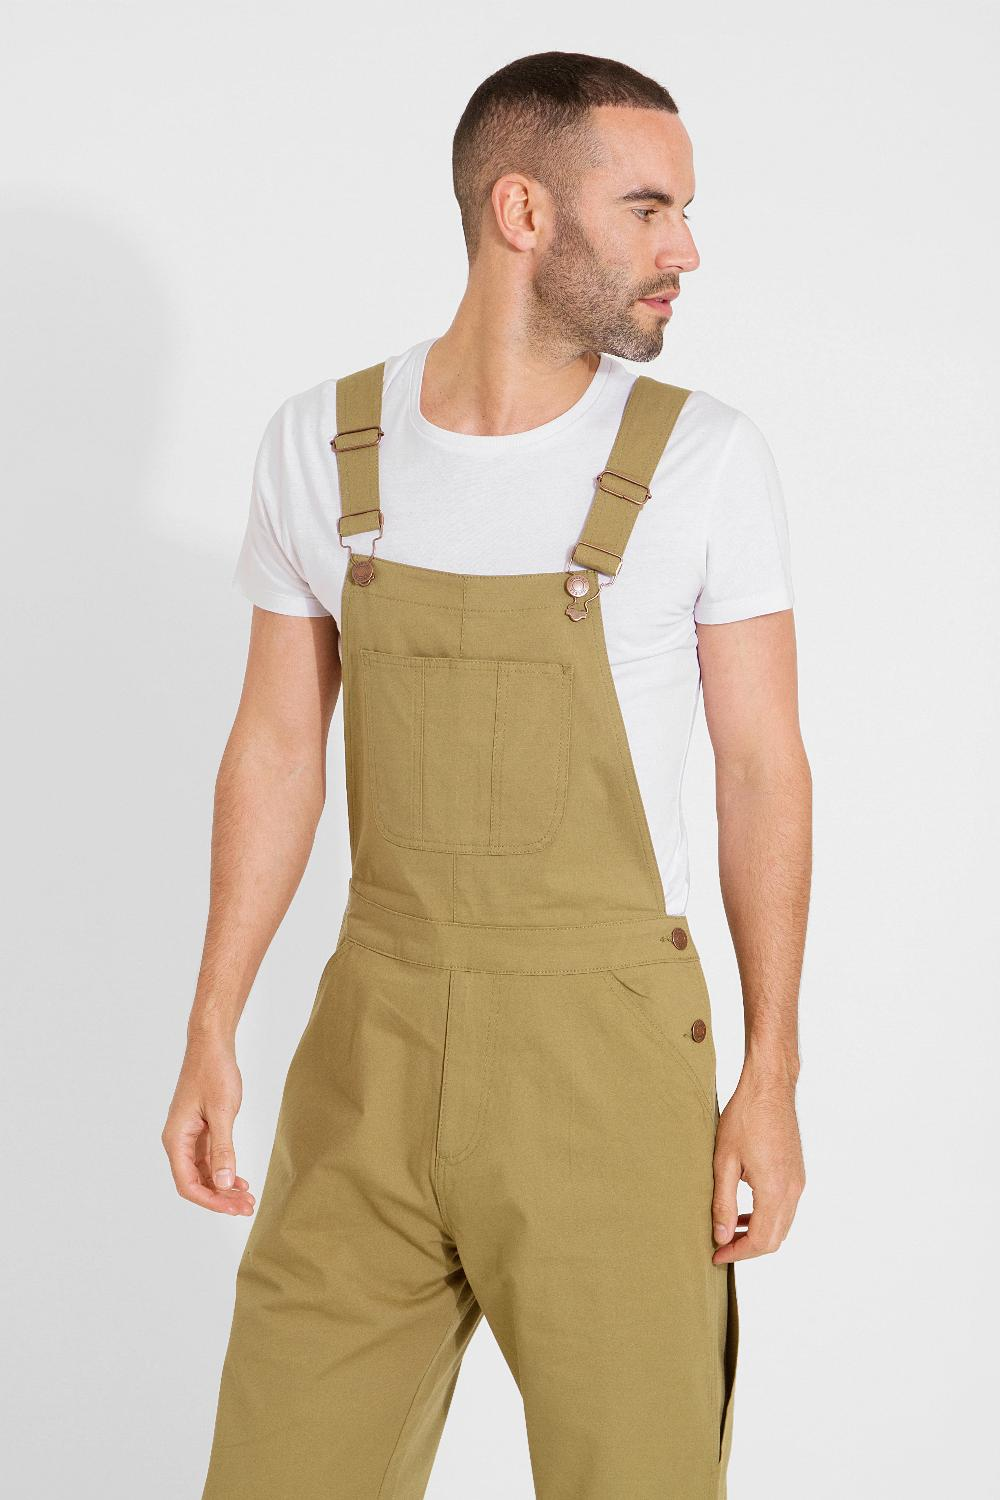 Top half focus of men's slim-fit olive cotton bib-overalls with clear view of side button fastening, belt loops and adjustable straps.